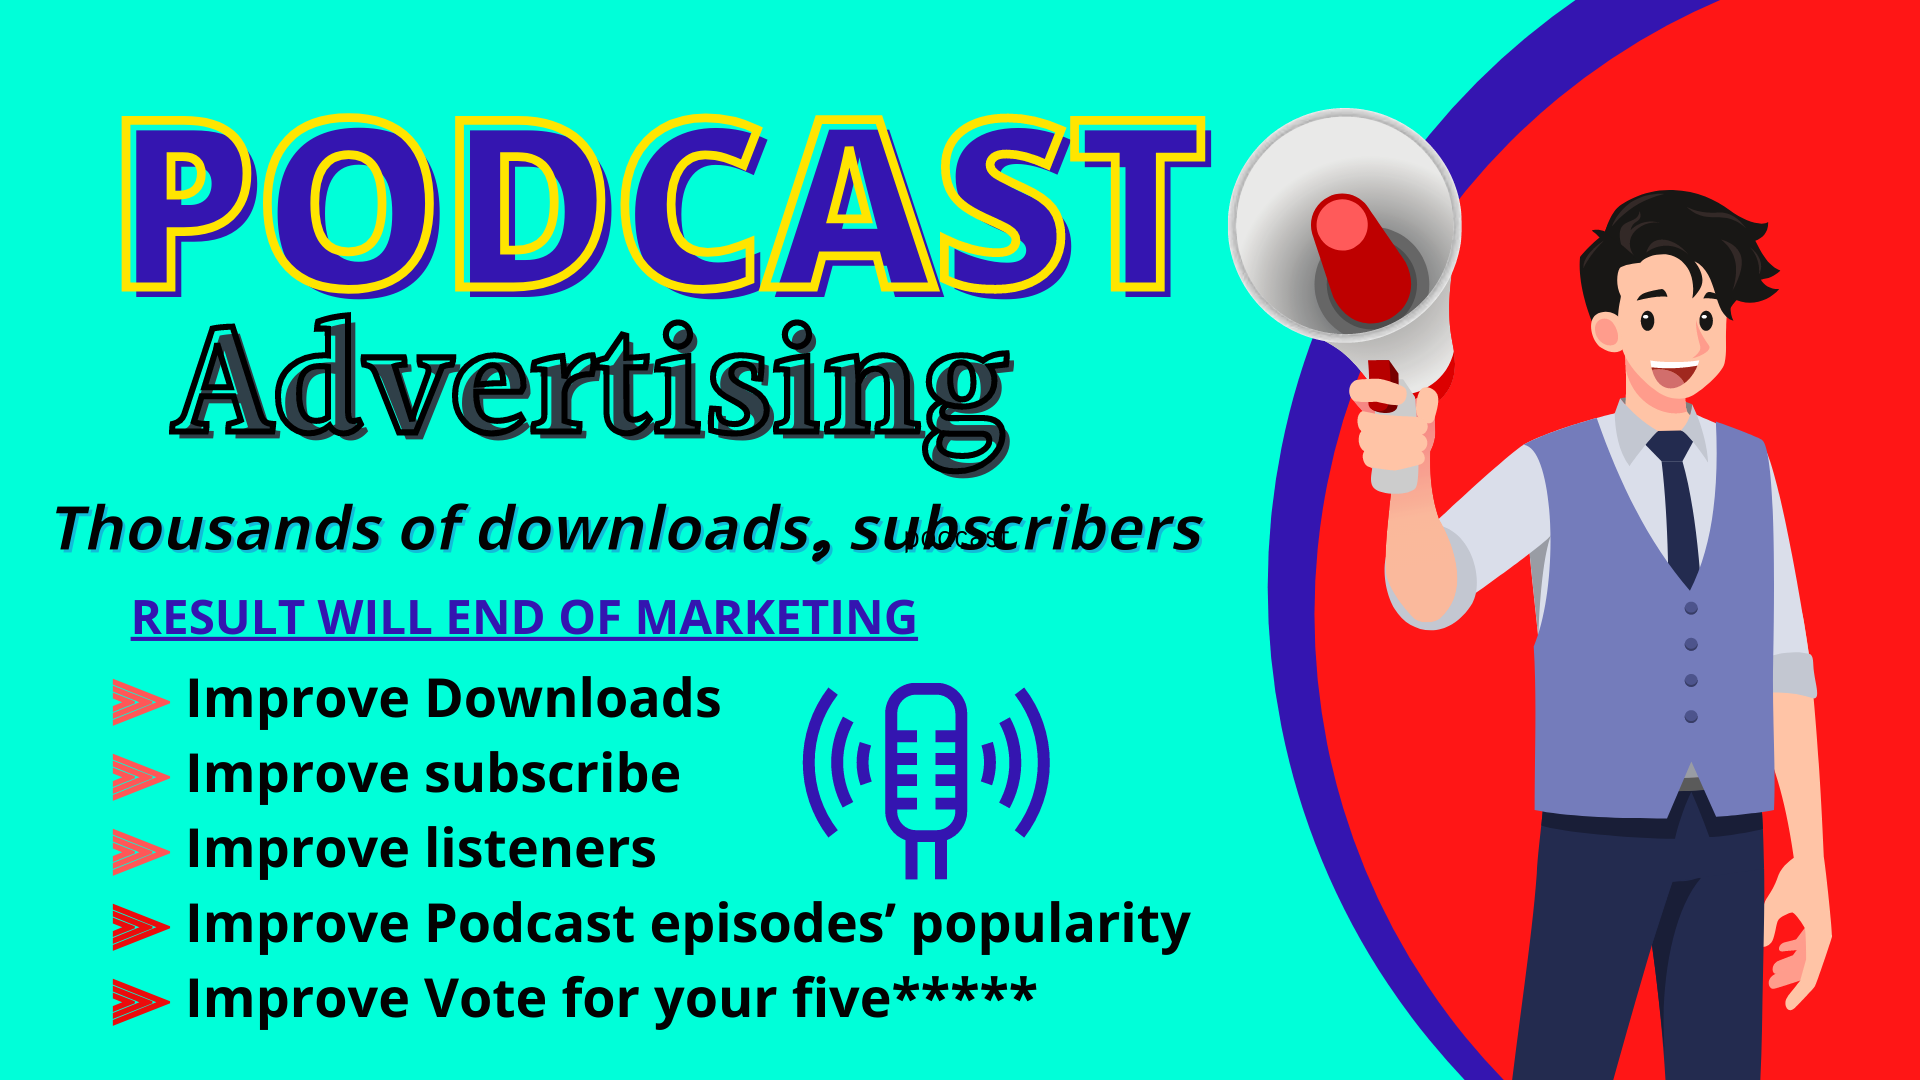 Promote your podcast for increasing audience 25k downloads,  listen and more